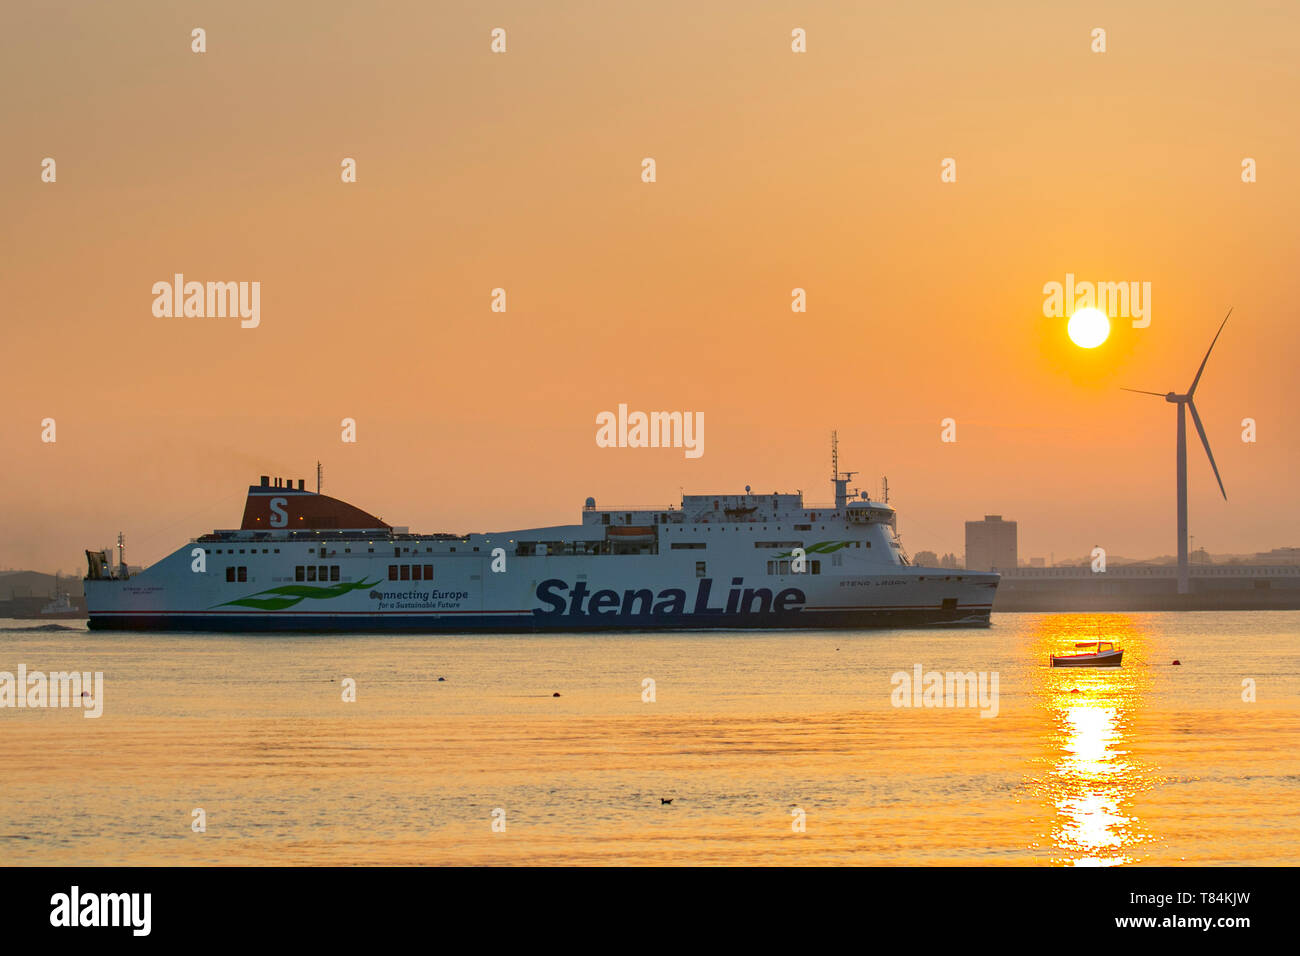 Liverpool, Merseyside. 11th May, 2019. UK Weather: Bright, Hazy start to the day as the sun rises over the River Mersey, docks and harbour. Credit: MediaWorldImages/Alamy Live News - Stock Image